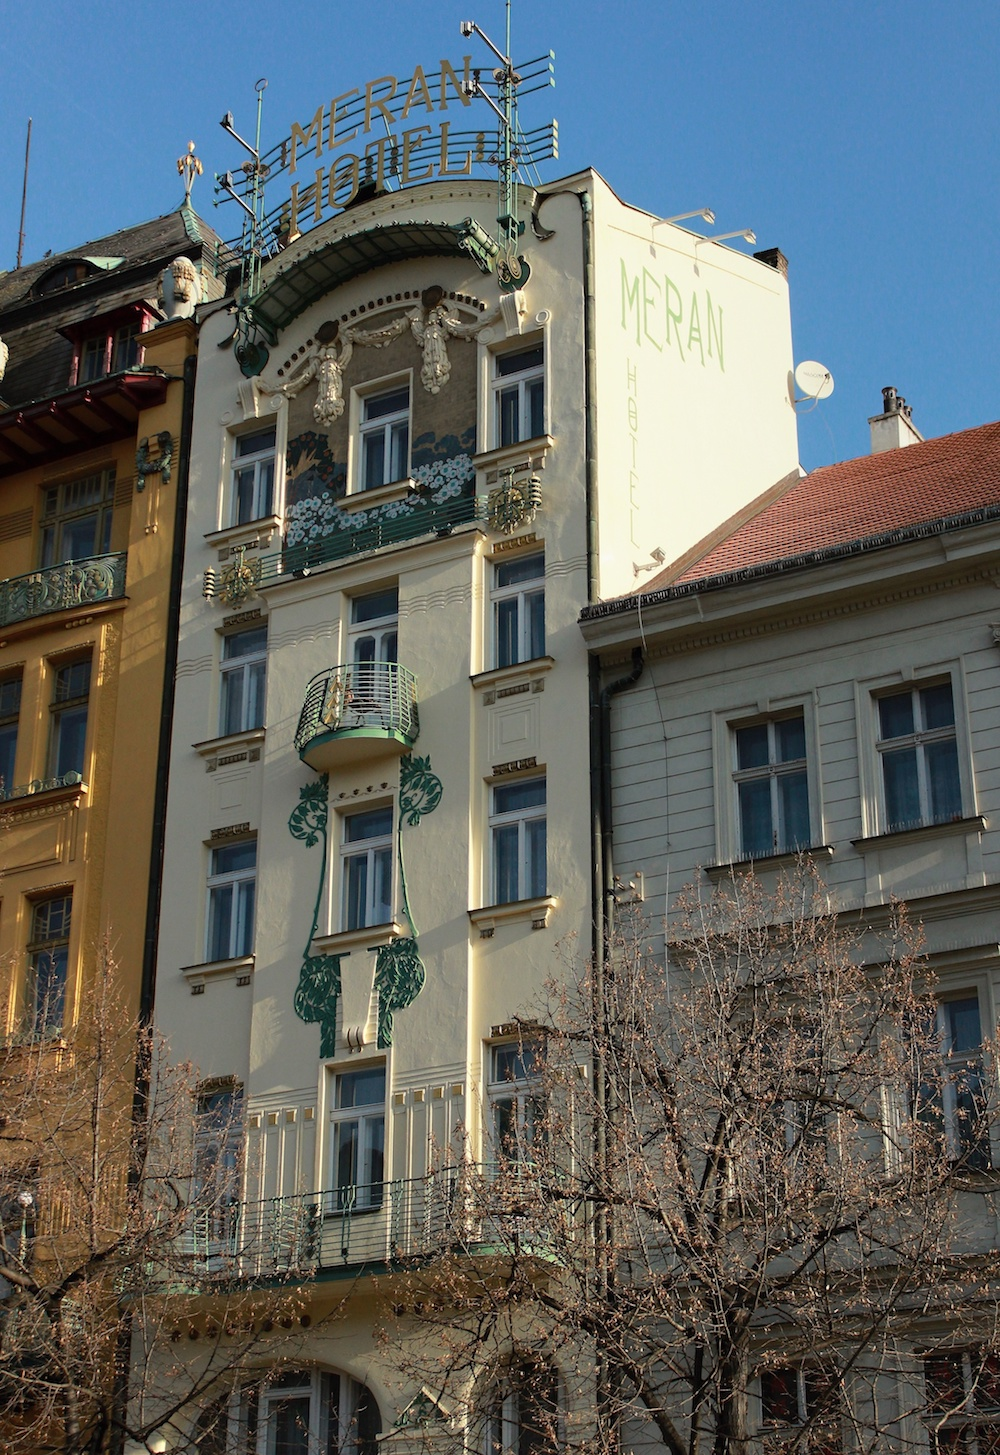 Hotel Meran | Prague 1 | Photos 11